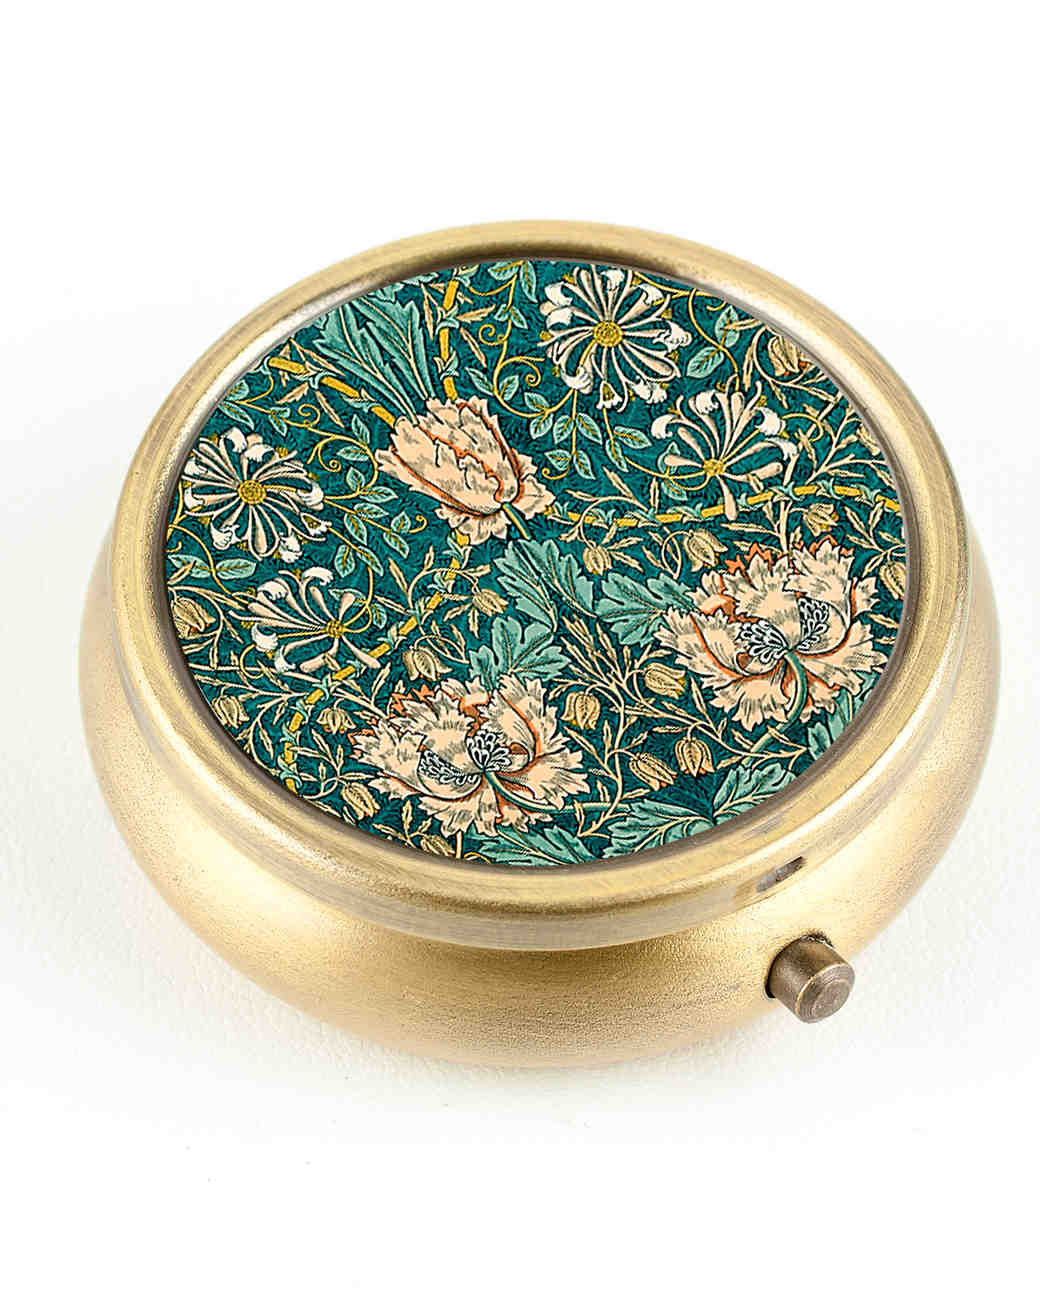 ring-boxes-decorative-design-pill-box-0115.jpg